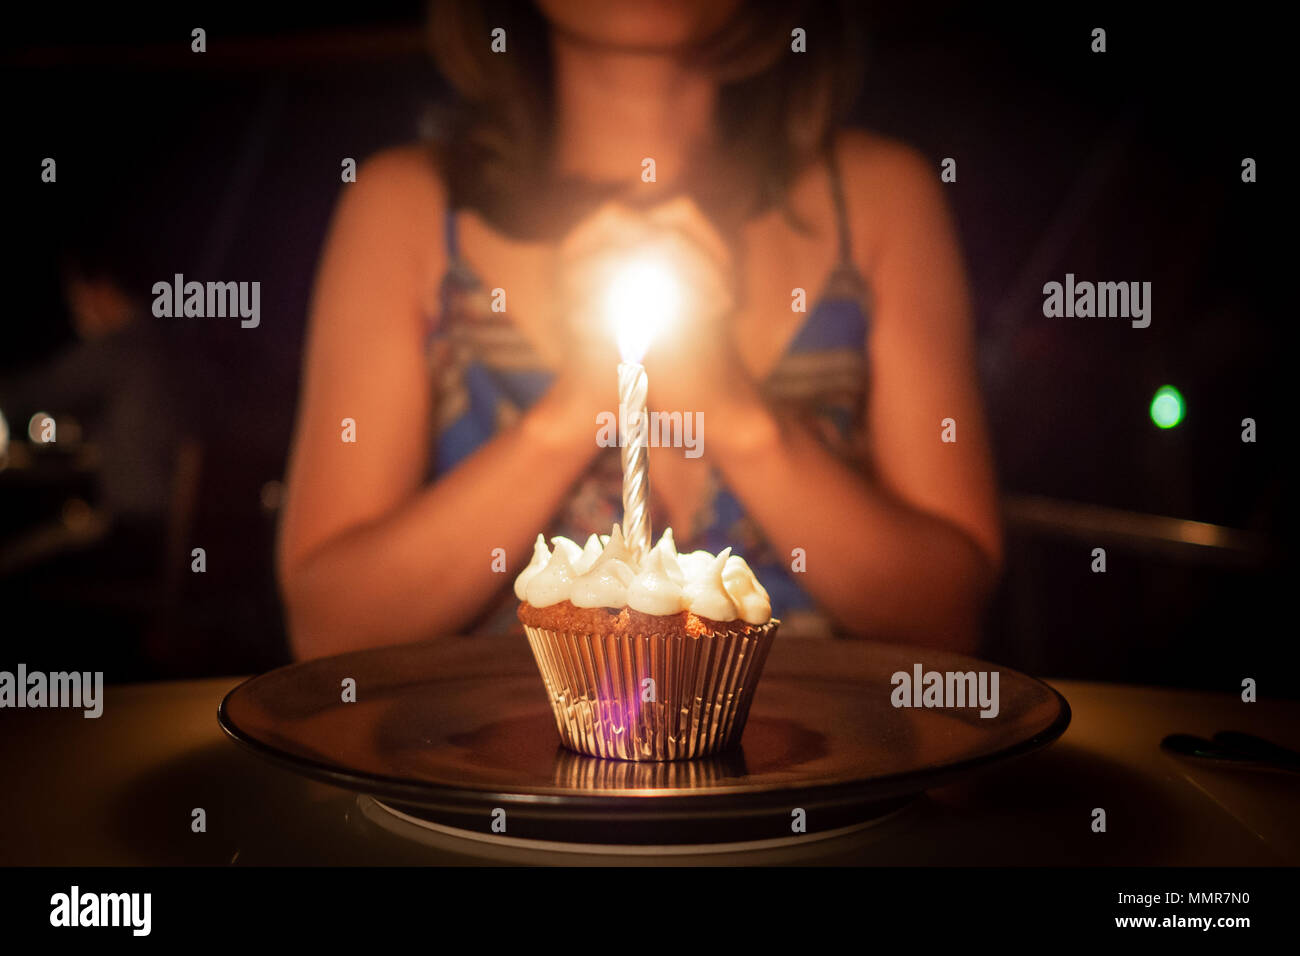 Young woman making a wish on your birthday - Stock Image